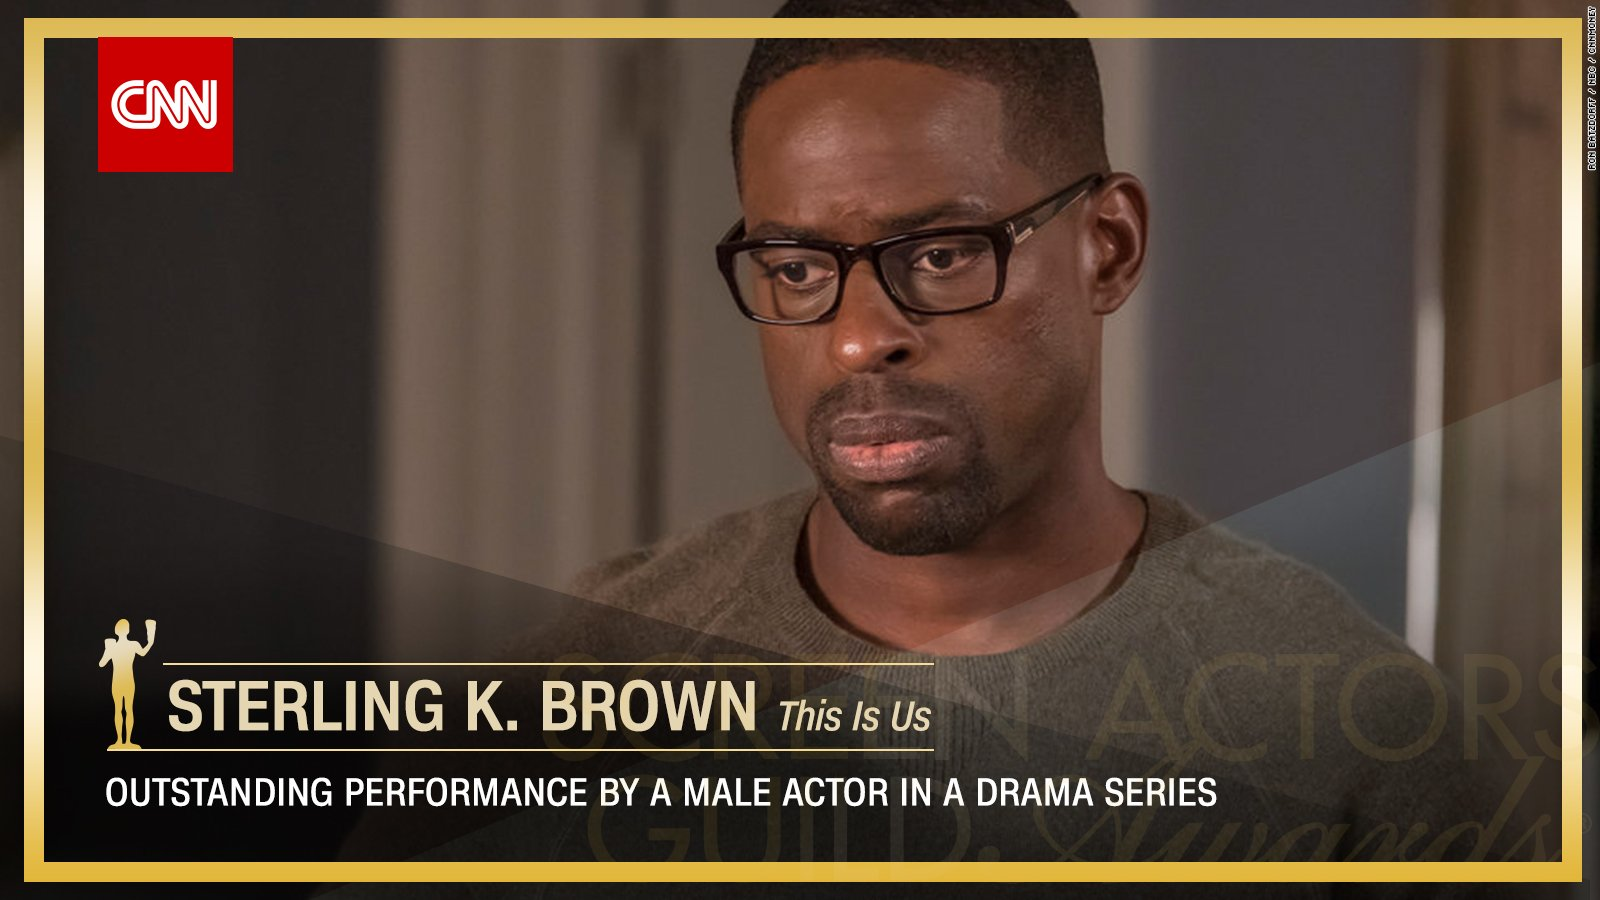 Sterling K. Brown wins Outstanding Performance by a Male Actor in a Drama Series. https://t.co/RyIMMFLDsS #SAGAwards https://t.co/1hqEl8A5dh